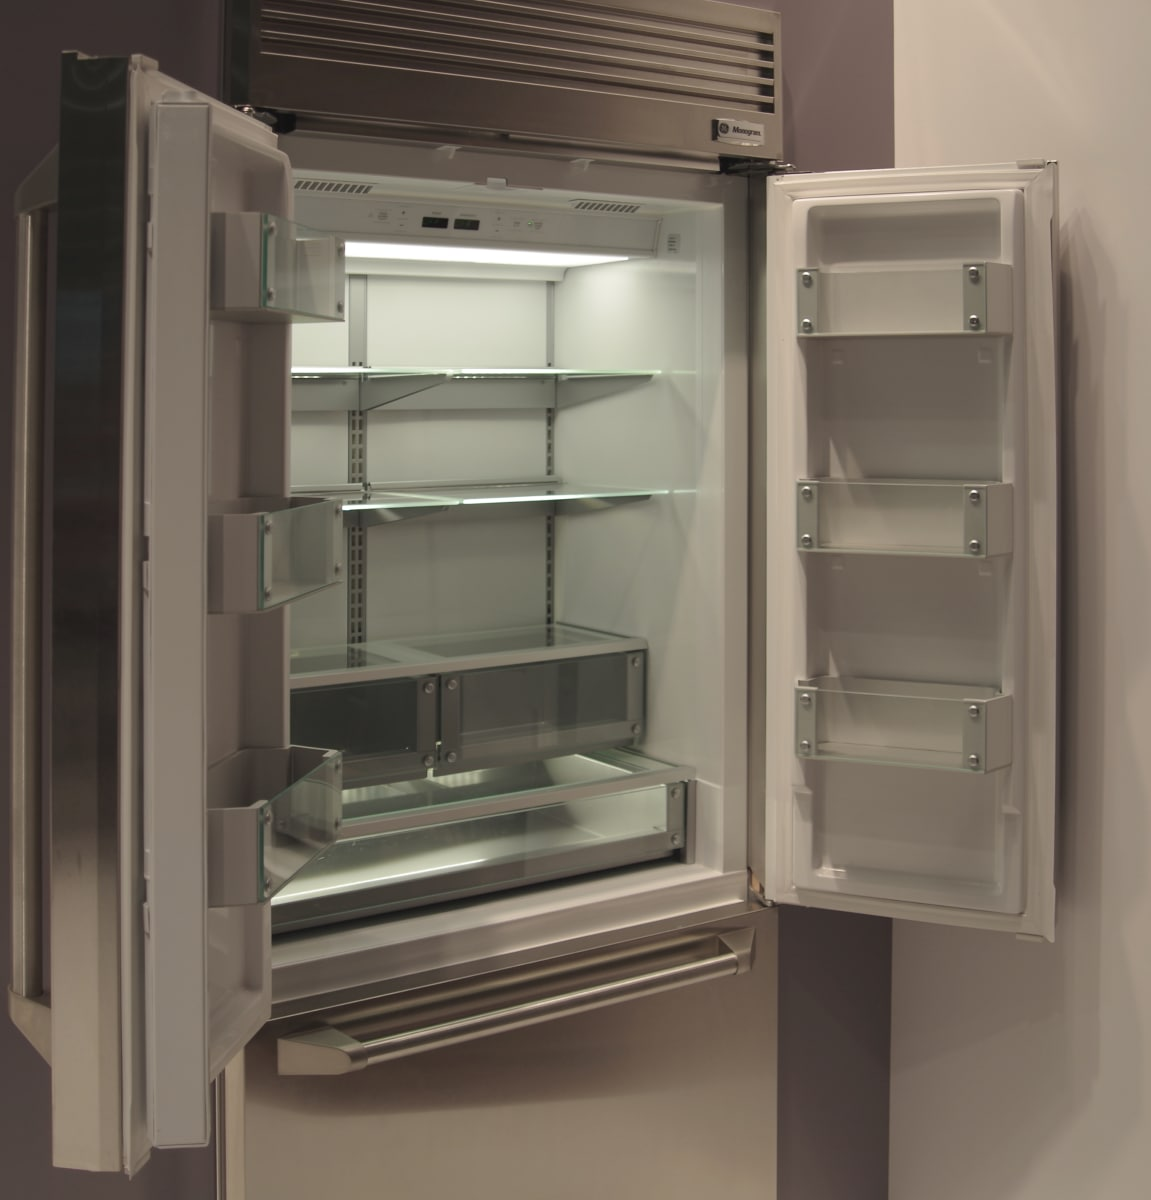 To Lure Wealthy Buyers, GE Reinvents the Fridge Light - Reviewed.com ...